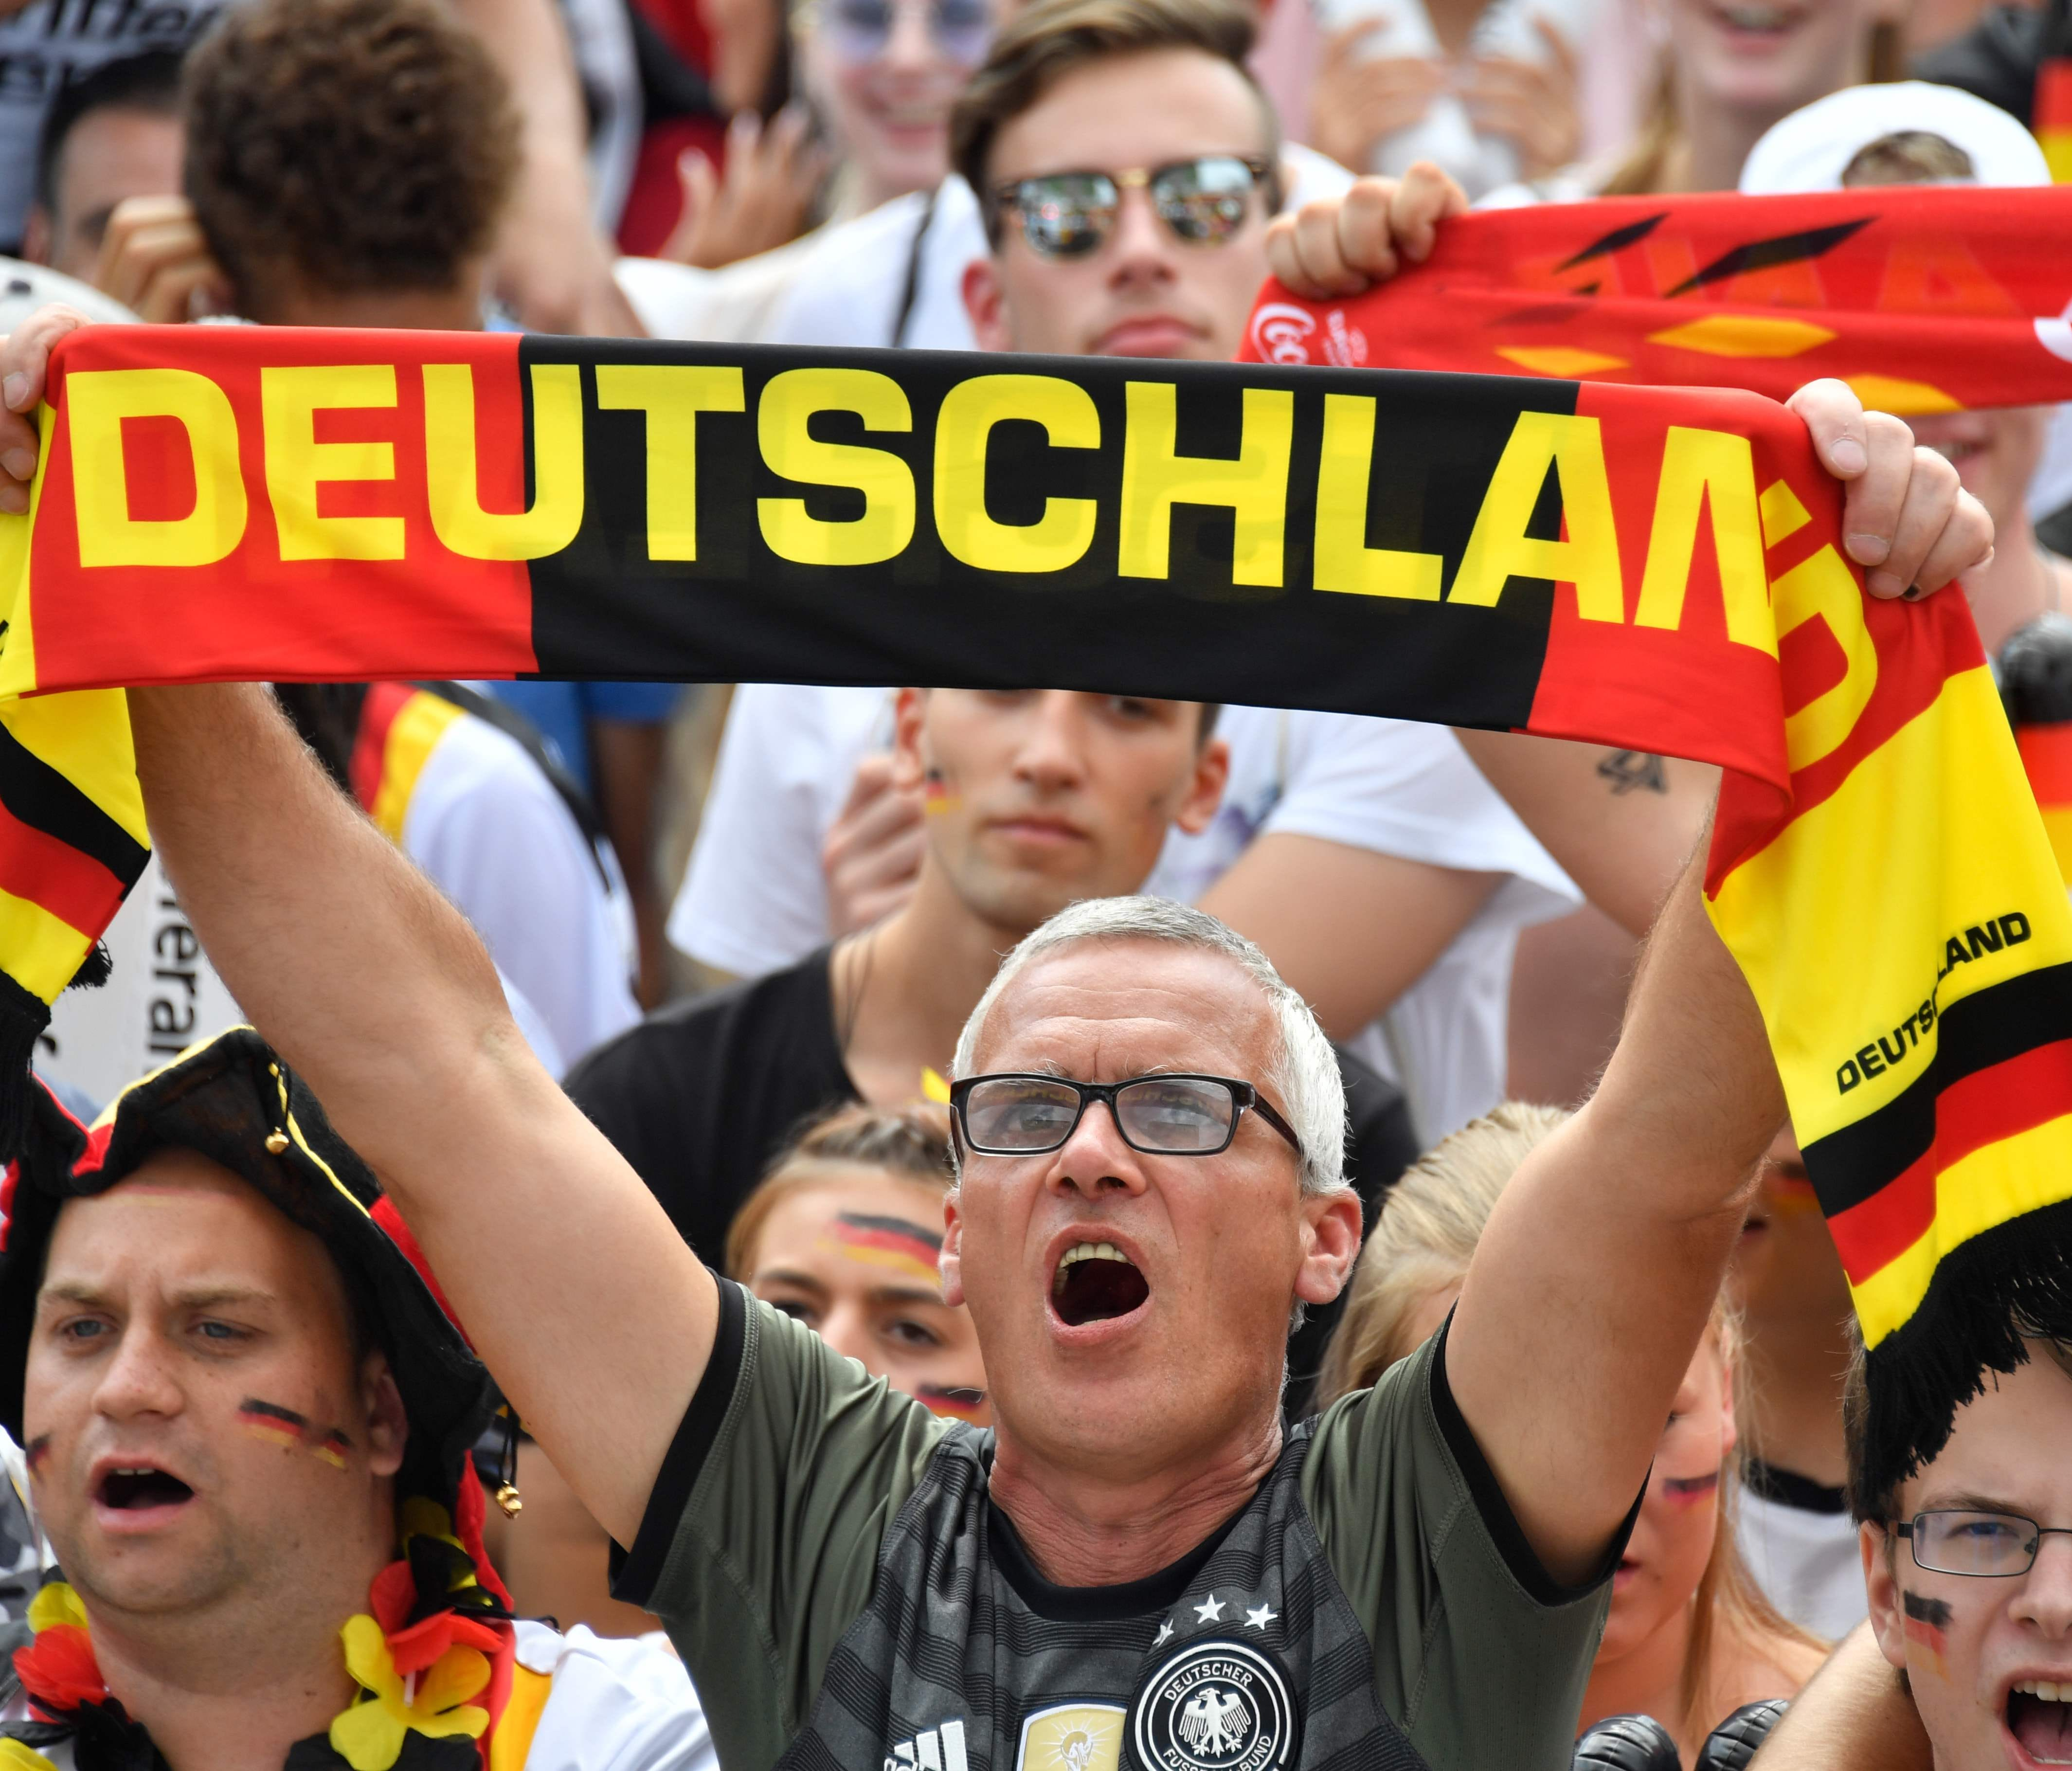 Supporters of the German national soccer team sing the national anthem as they attend a public event in Berlin to watch the World Cup match between South Korea and Germany on June 27, 2018.